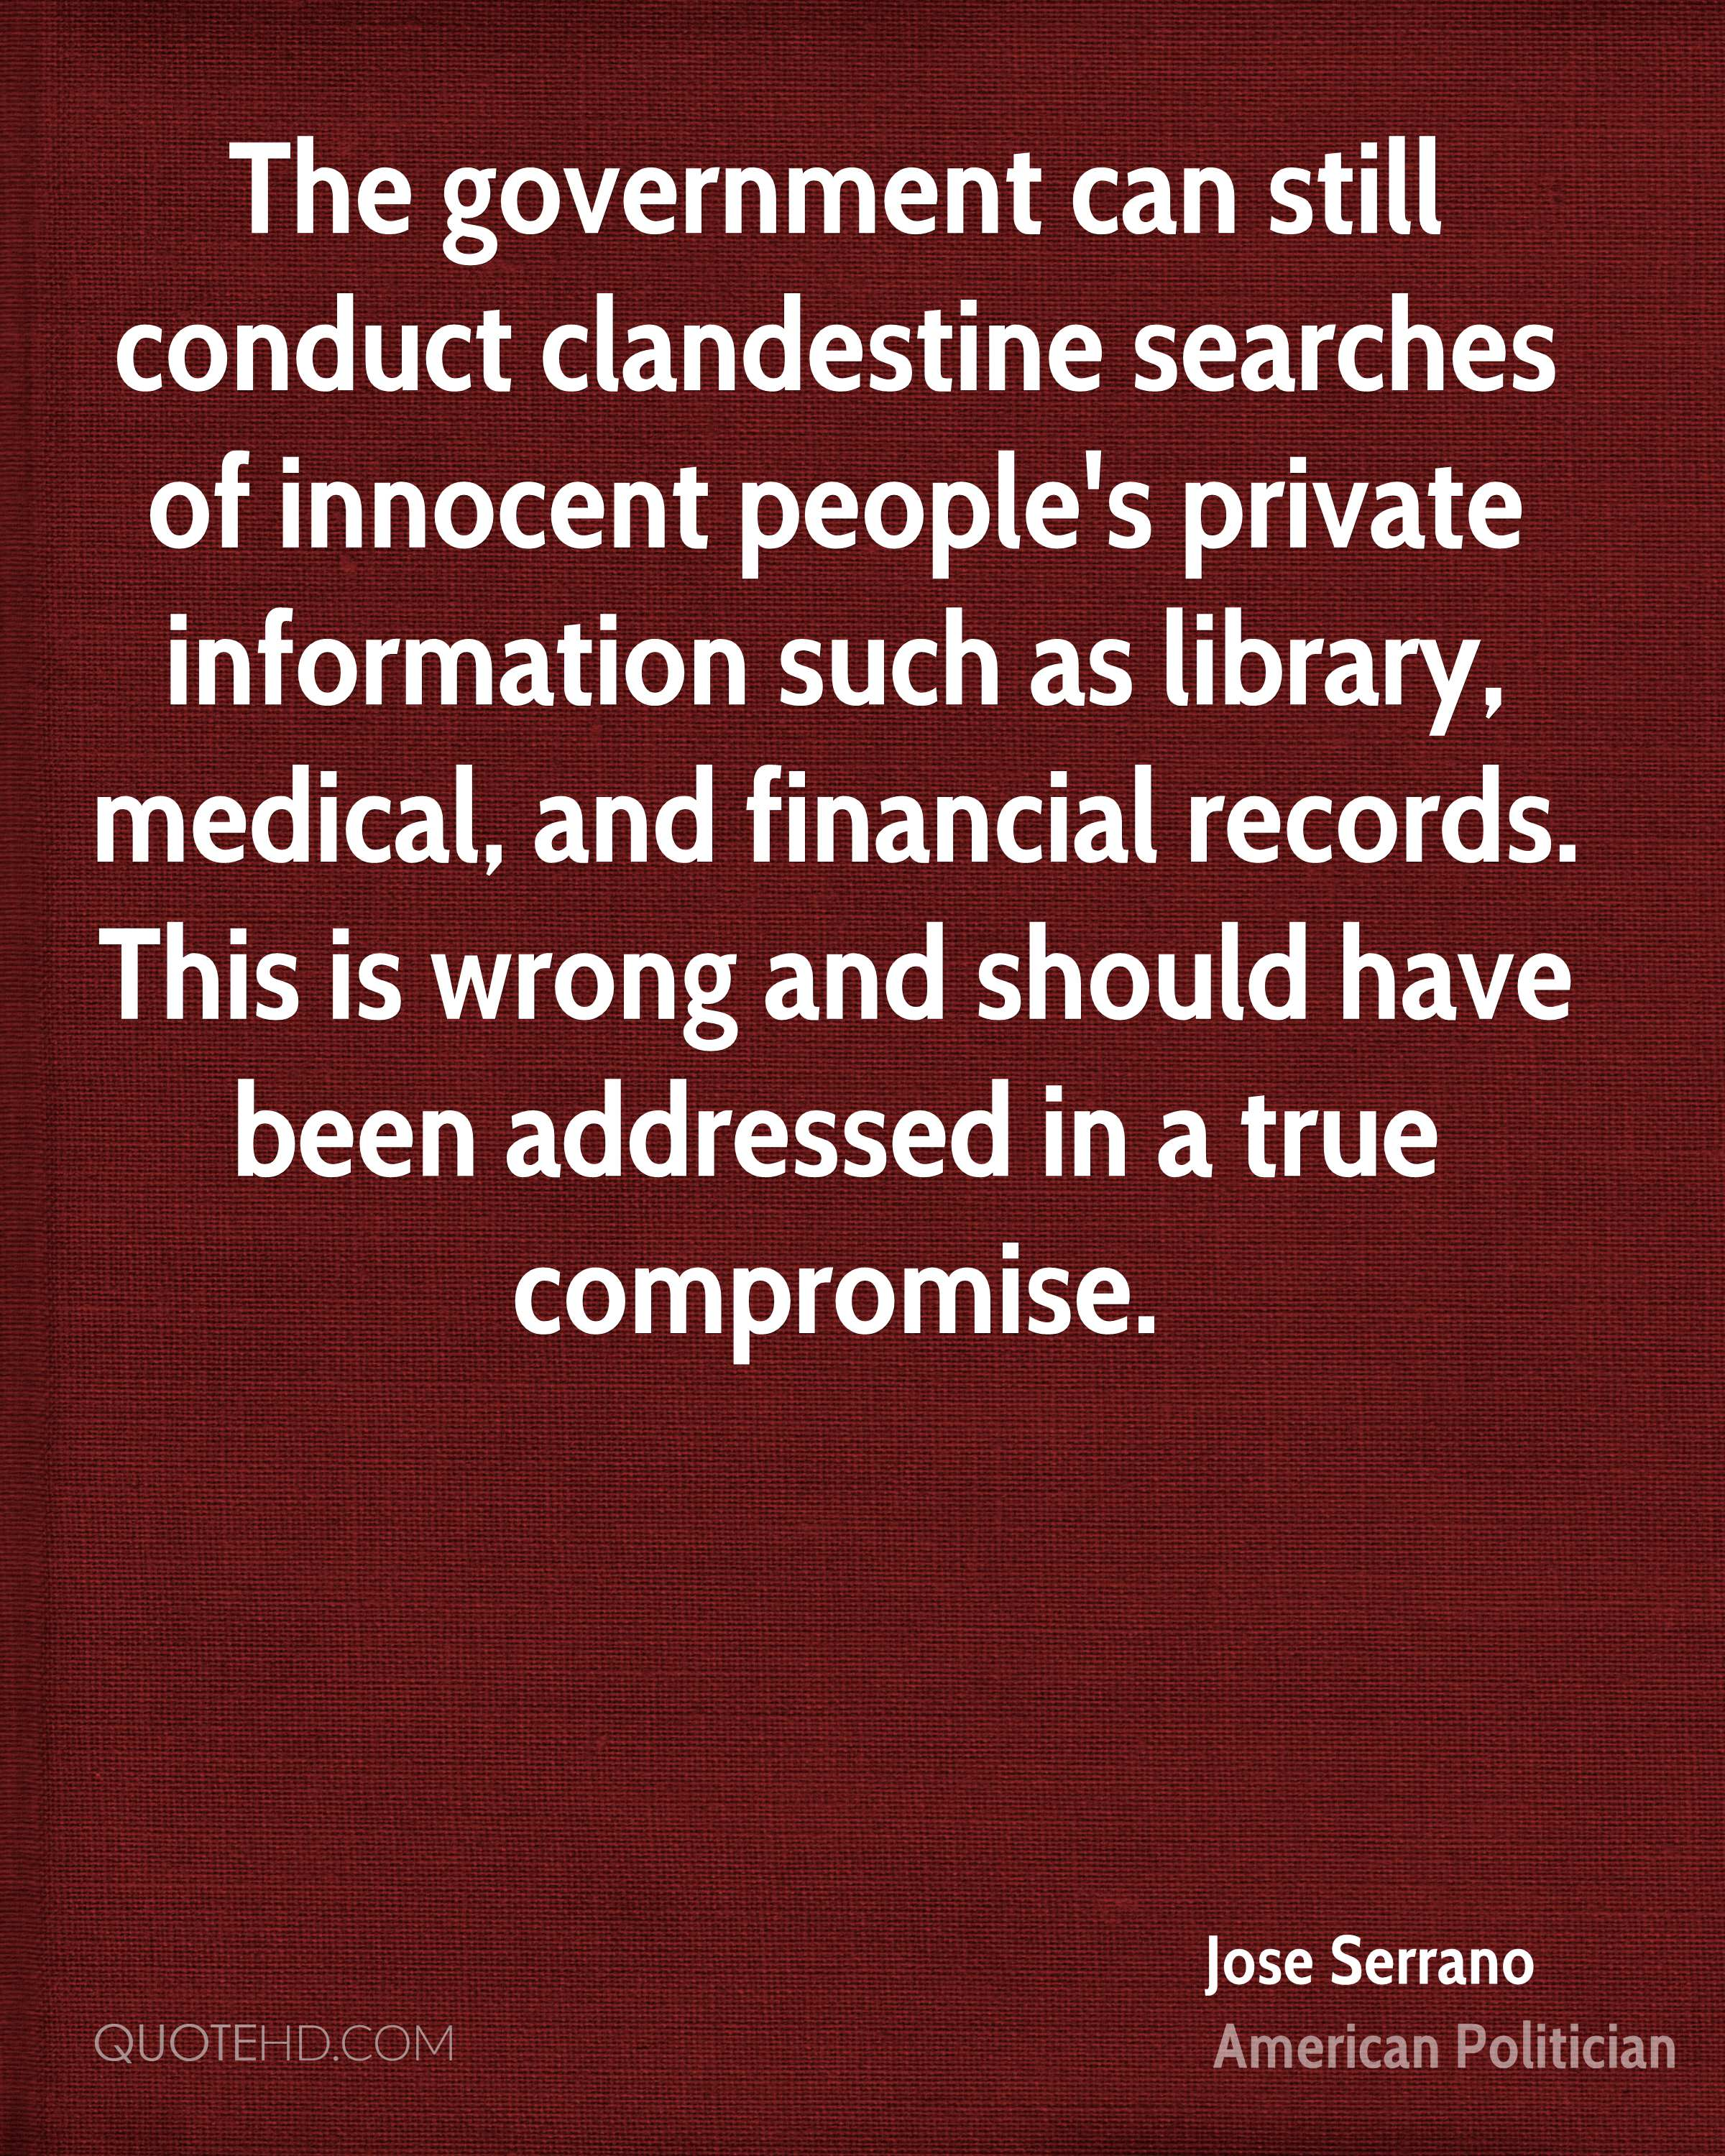 The government can still conduct clandestine searches of innocent people's private information such as library, medical, and financial records. This is wrong and should have been addressed in a true compromise.